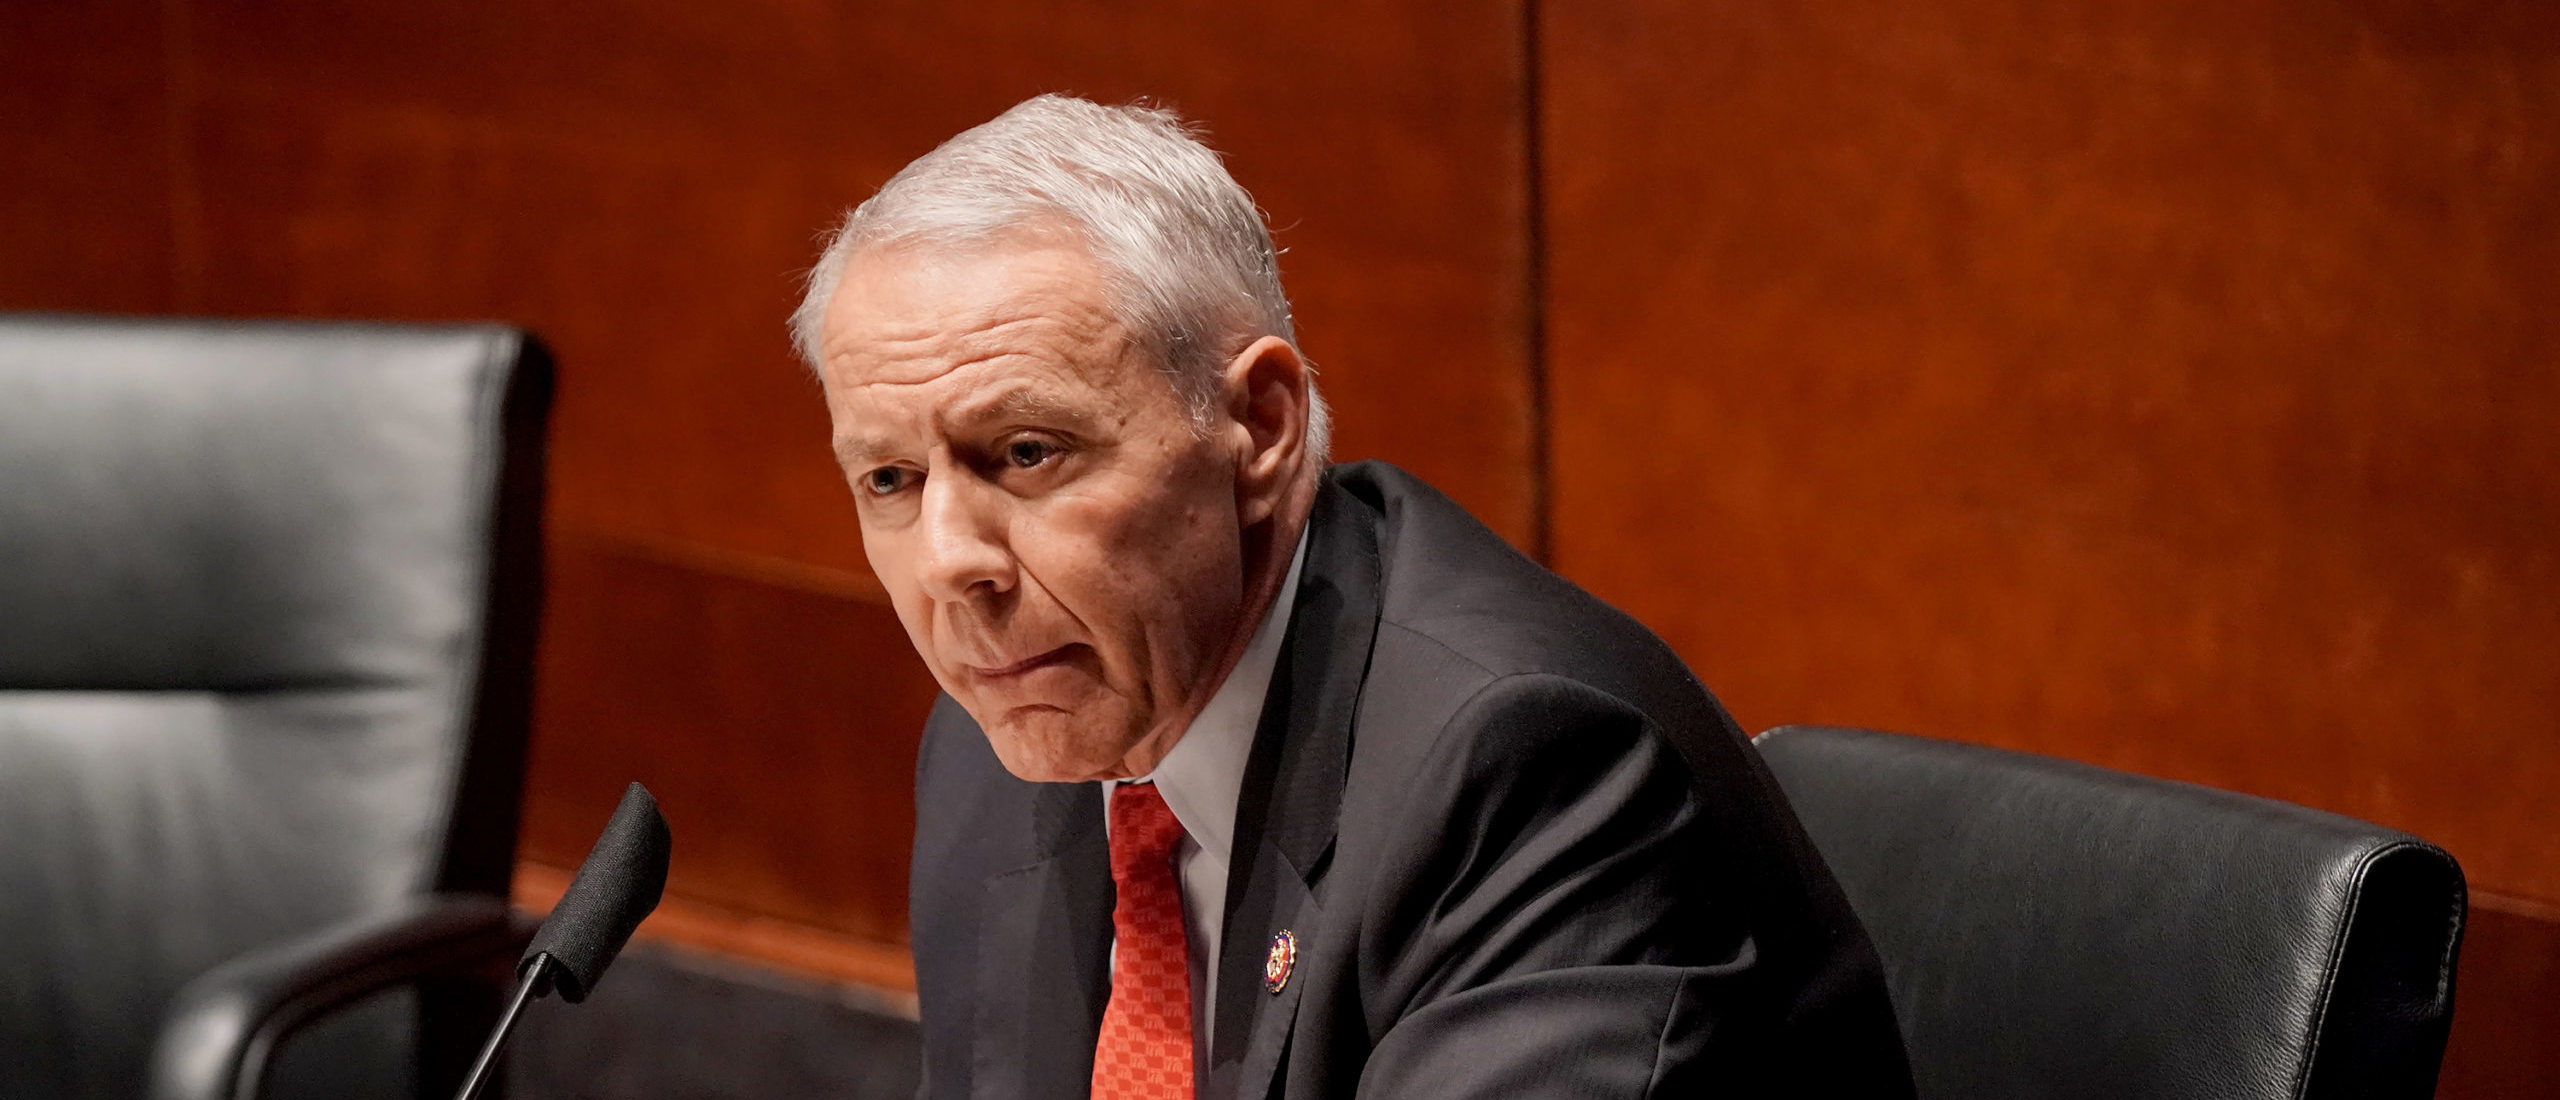 U.S. Rep. Ken Buck (R-CO) questions witnesses at a House Judiciary Committee hearing on police brutality and racial profiling on June 10, 2020 in Washington, DC. George Floyd died May 25 while in Minneapolis police custody, sparking worldwide protests. (Photo by Greg Nash-Pool/Getty Images)